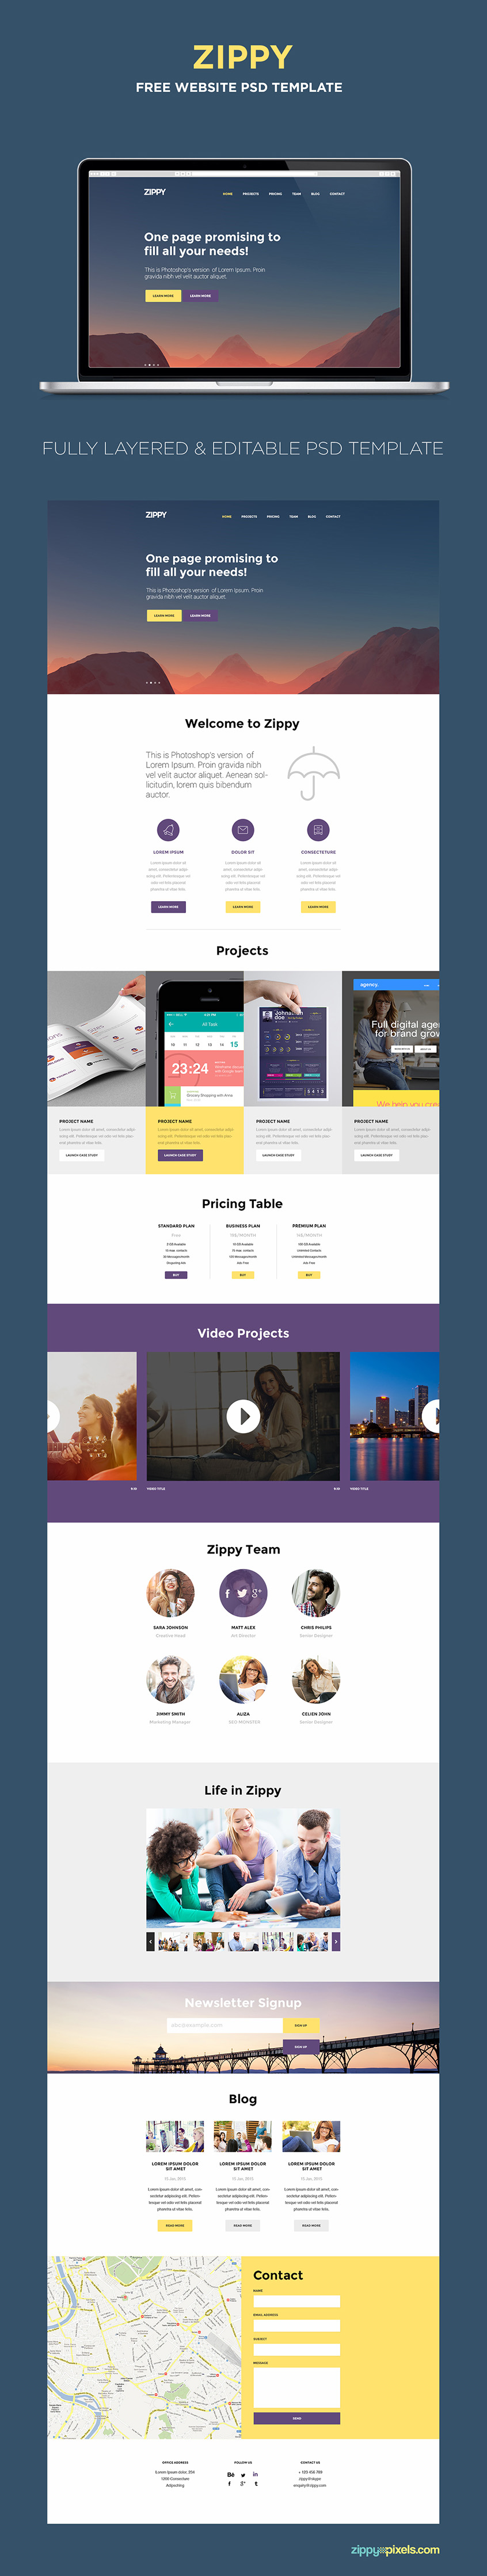 Free one page website template psd zippypixels for Google sites faq template